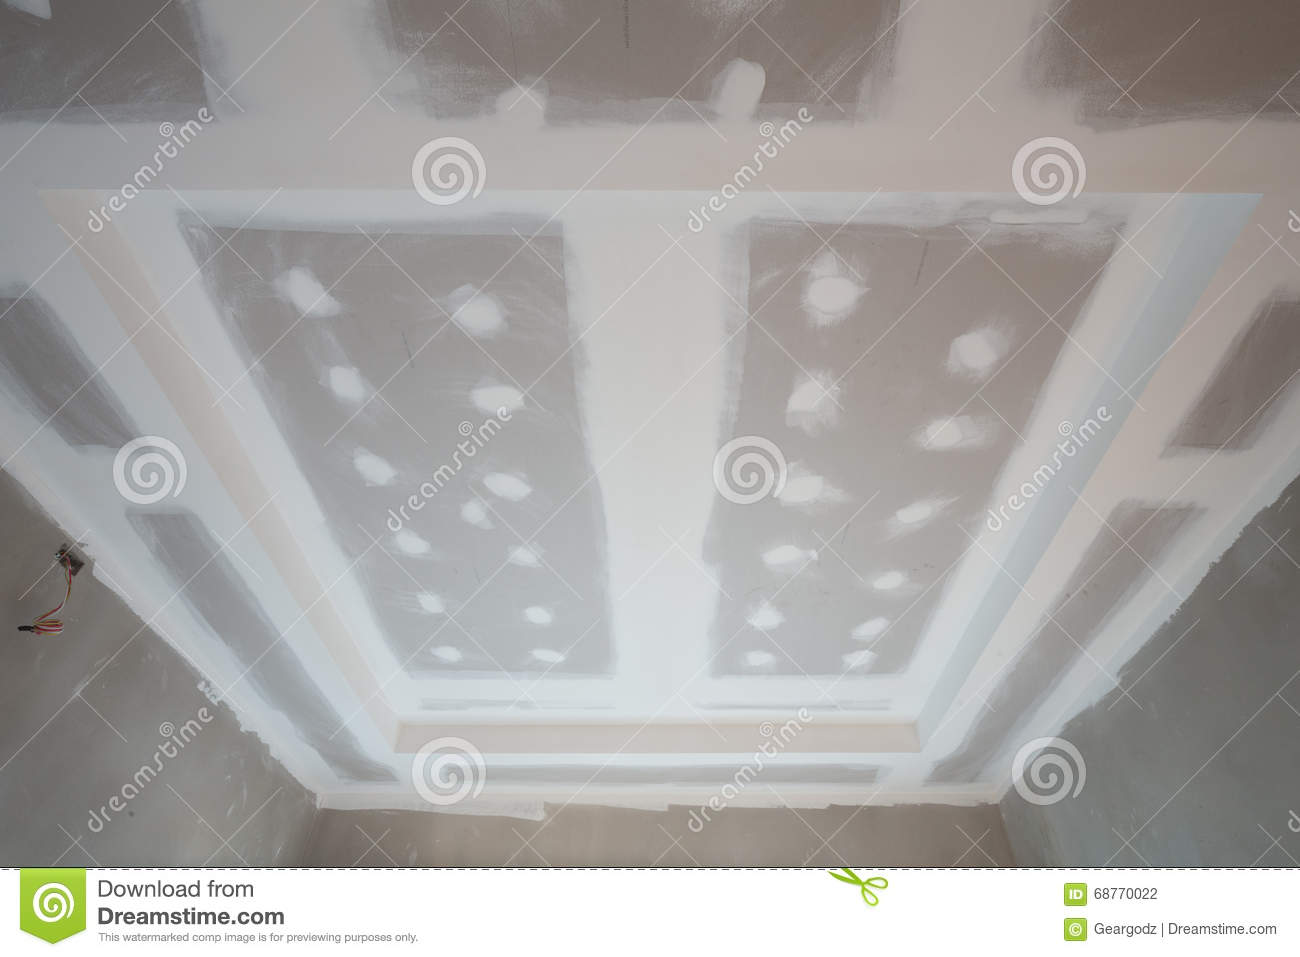 Gypsum board ceiling construction site Stock Photography - Gypsum Board Ceiling Construction Site Stock Photo - Image: 68769955